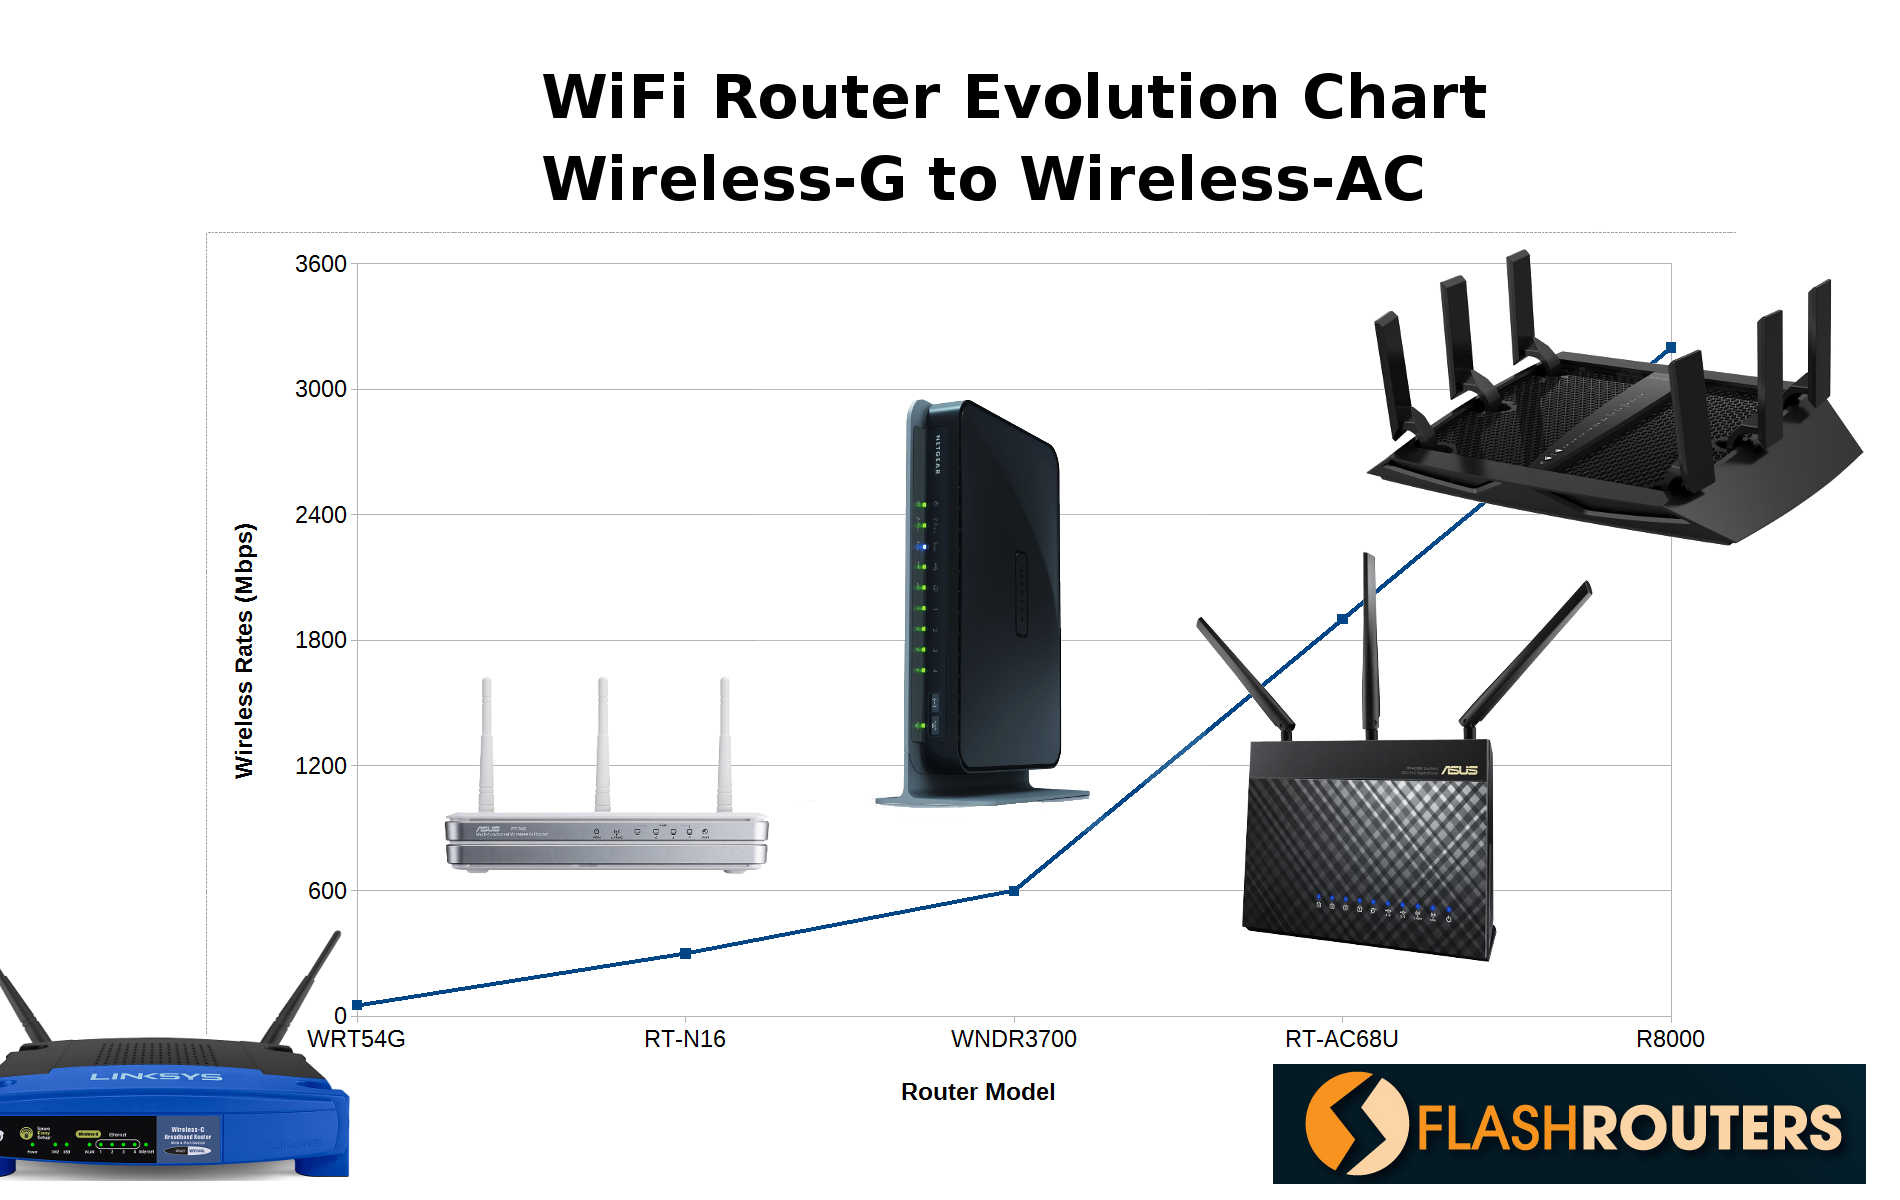 Evolution Chart of Wireless Routers - Wireless-G to Wireless-AC